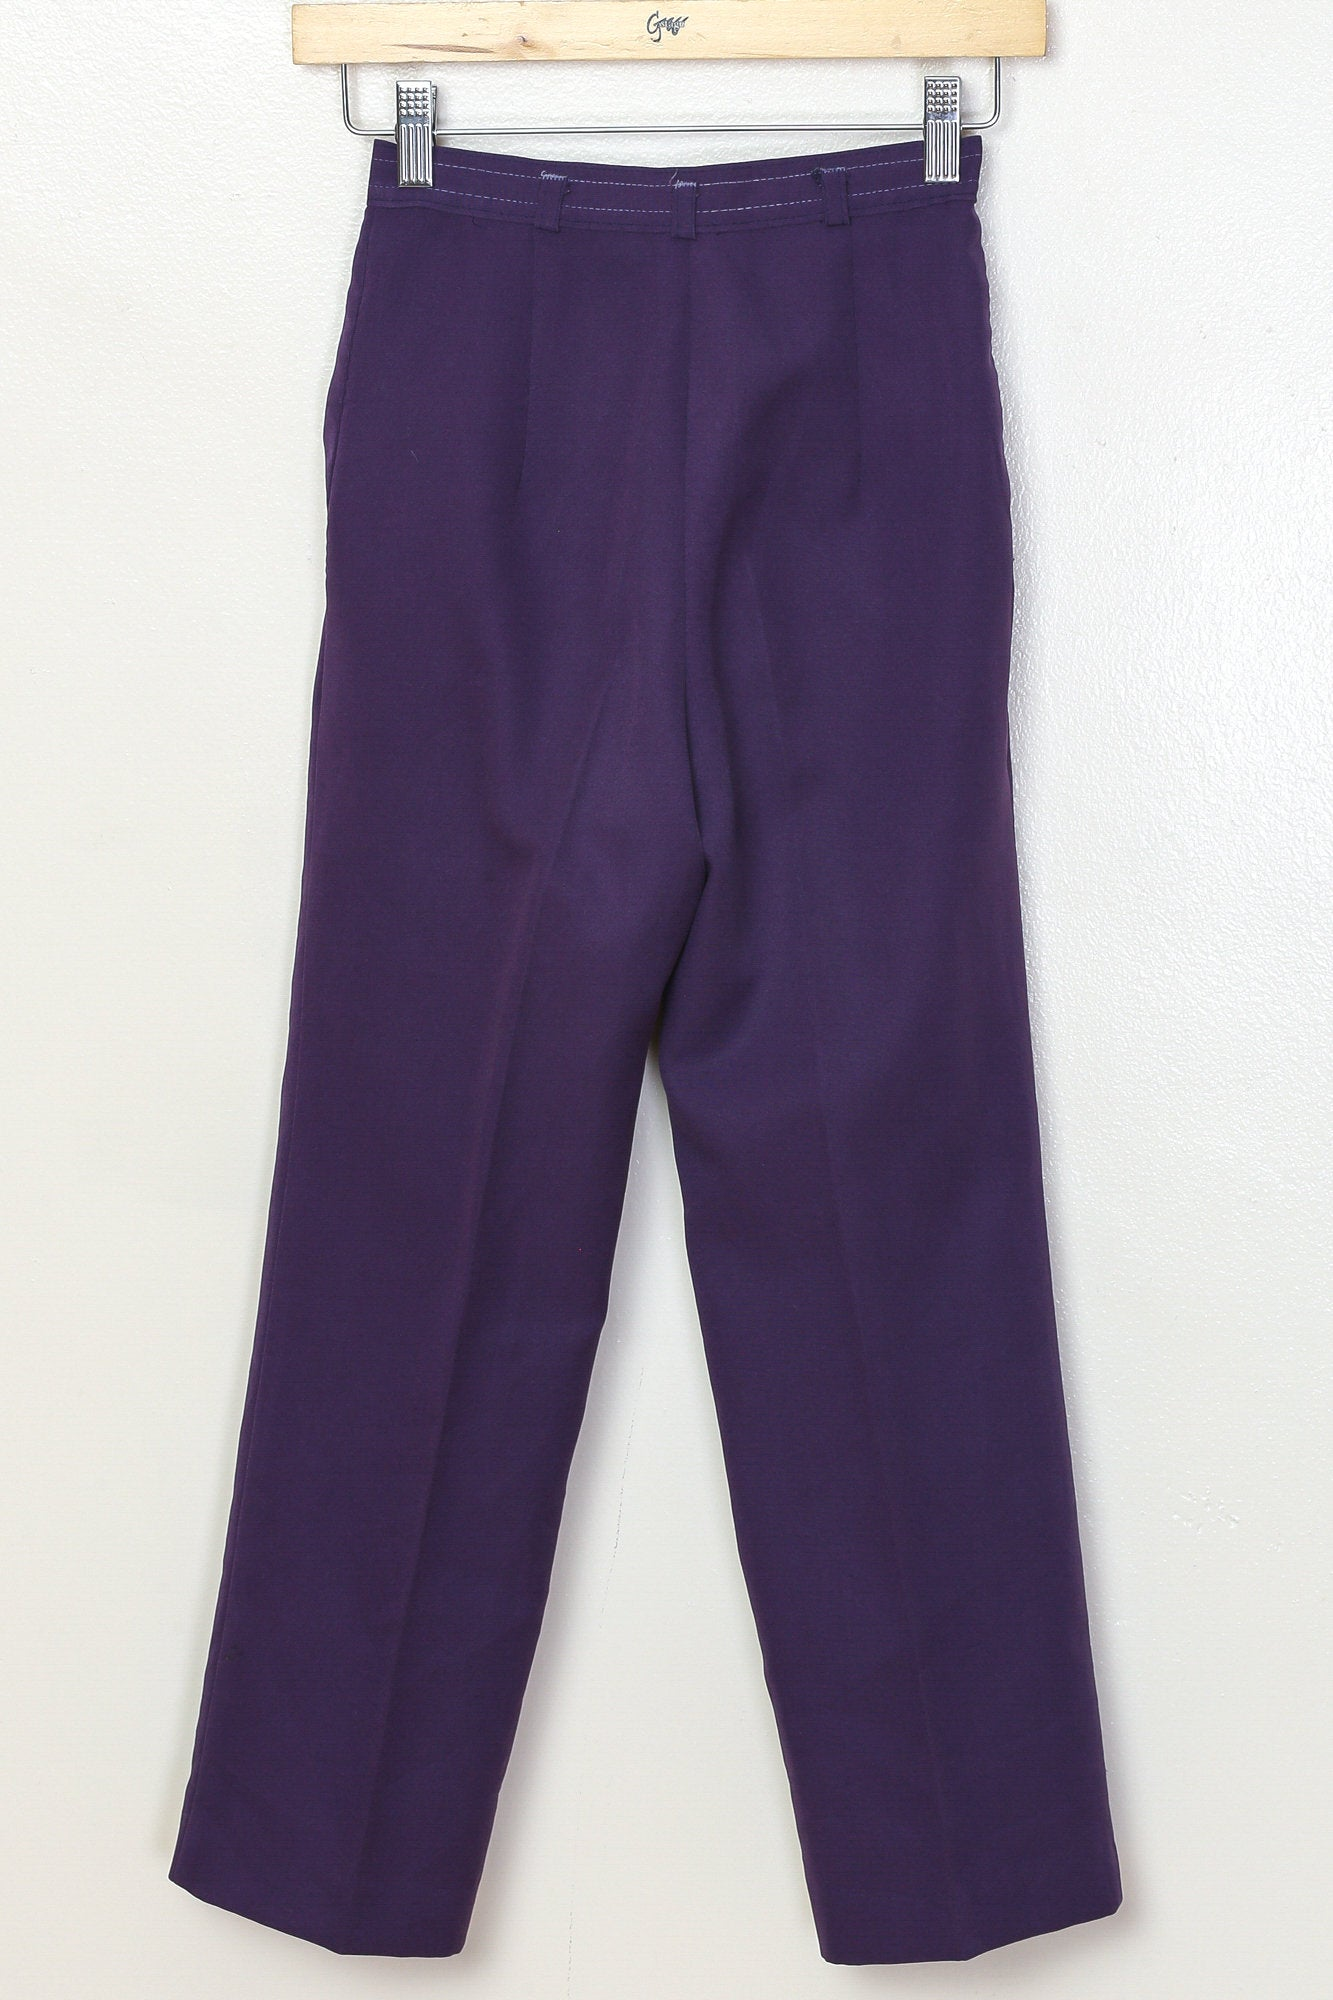 80s Purple Pleated Pants - Youth Small